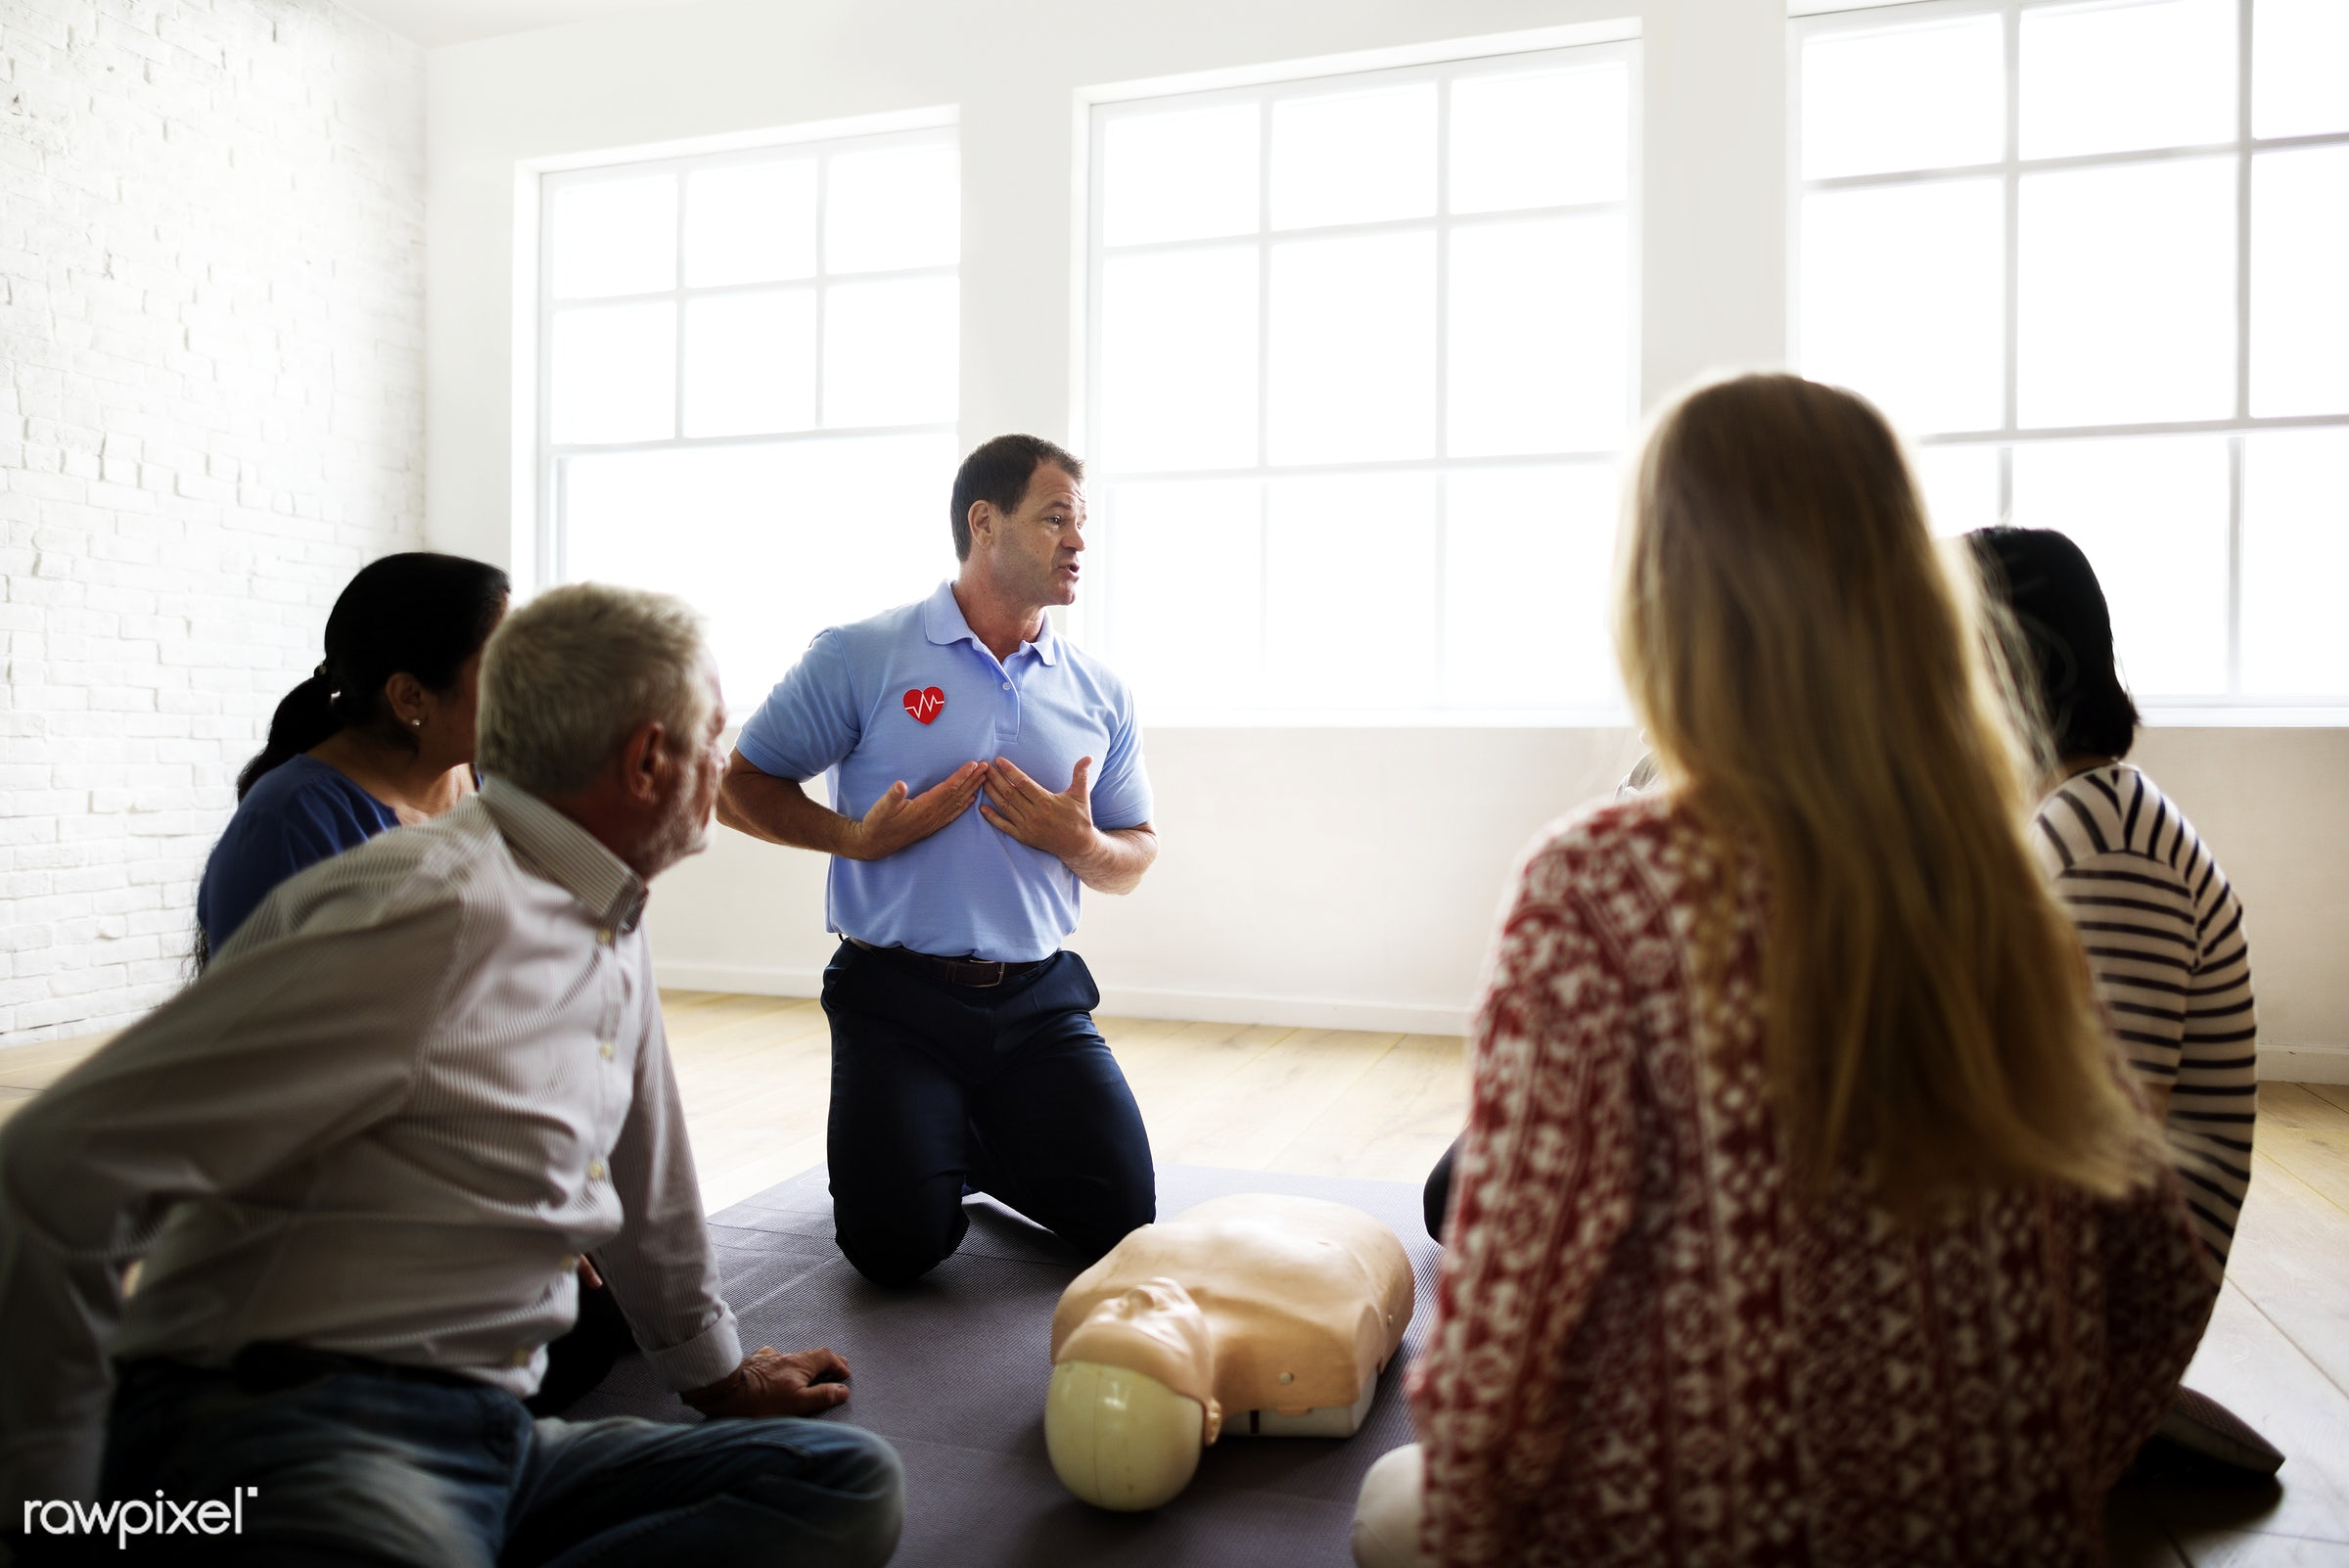 Diverse people taking a CPR first aid training class - cpr training, person, knowledge, save, first aid, treatment,...